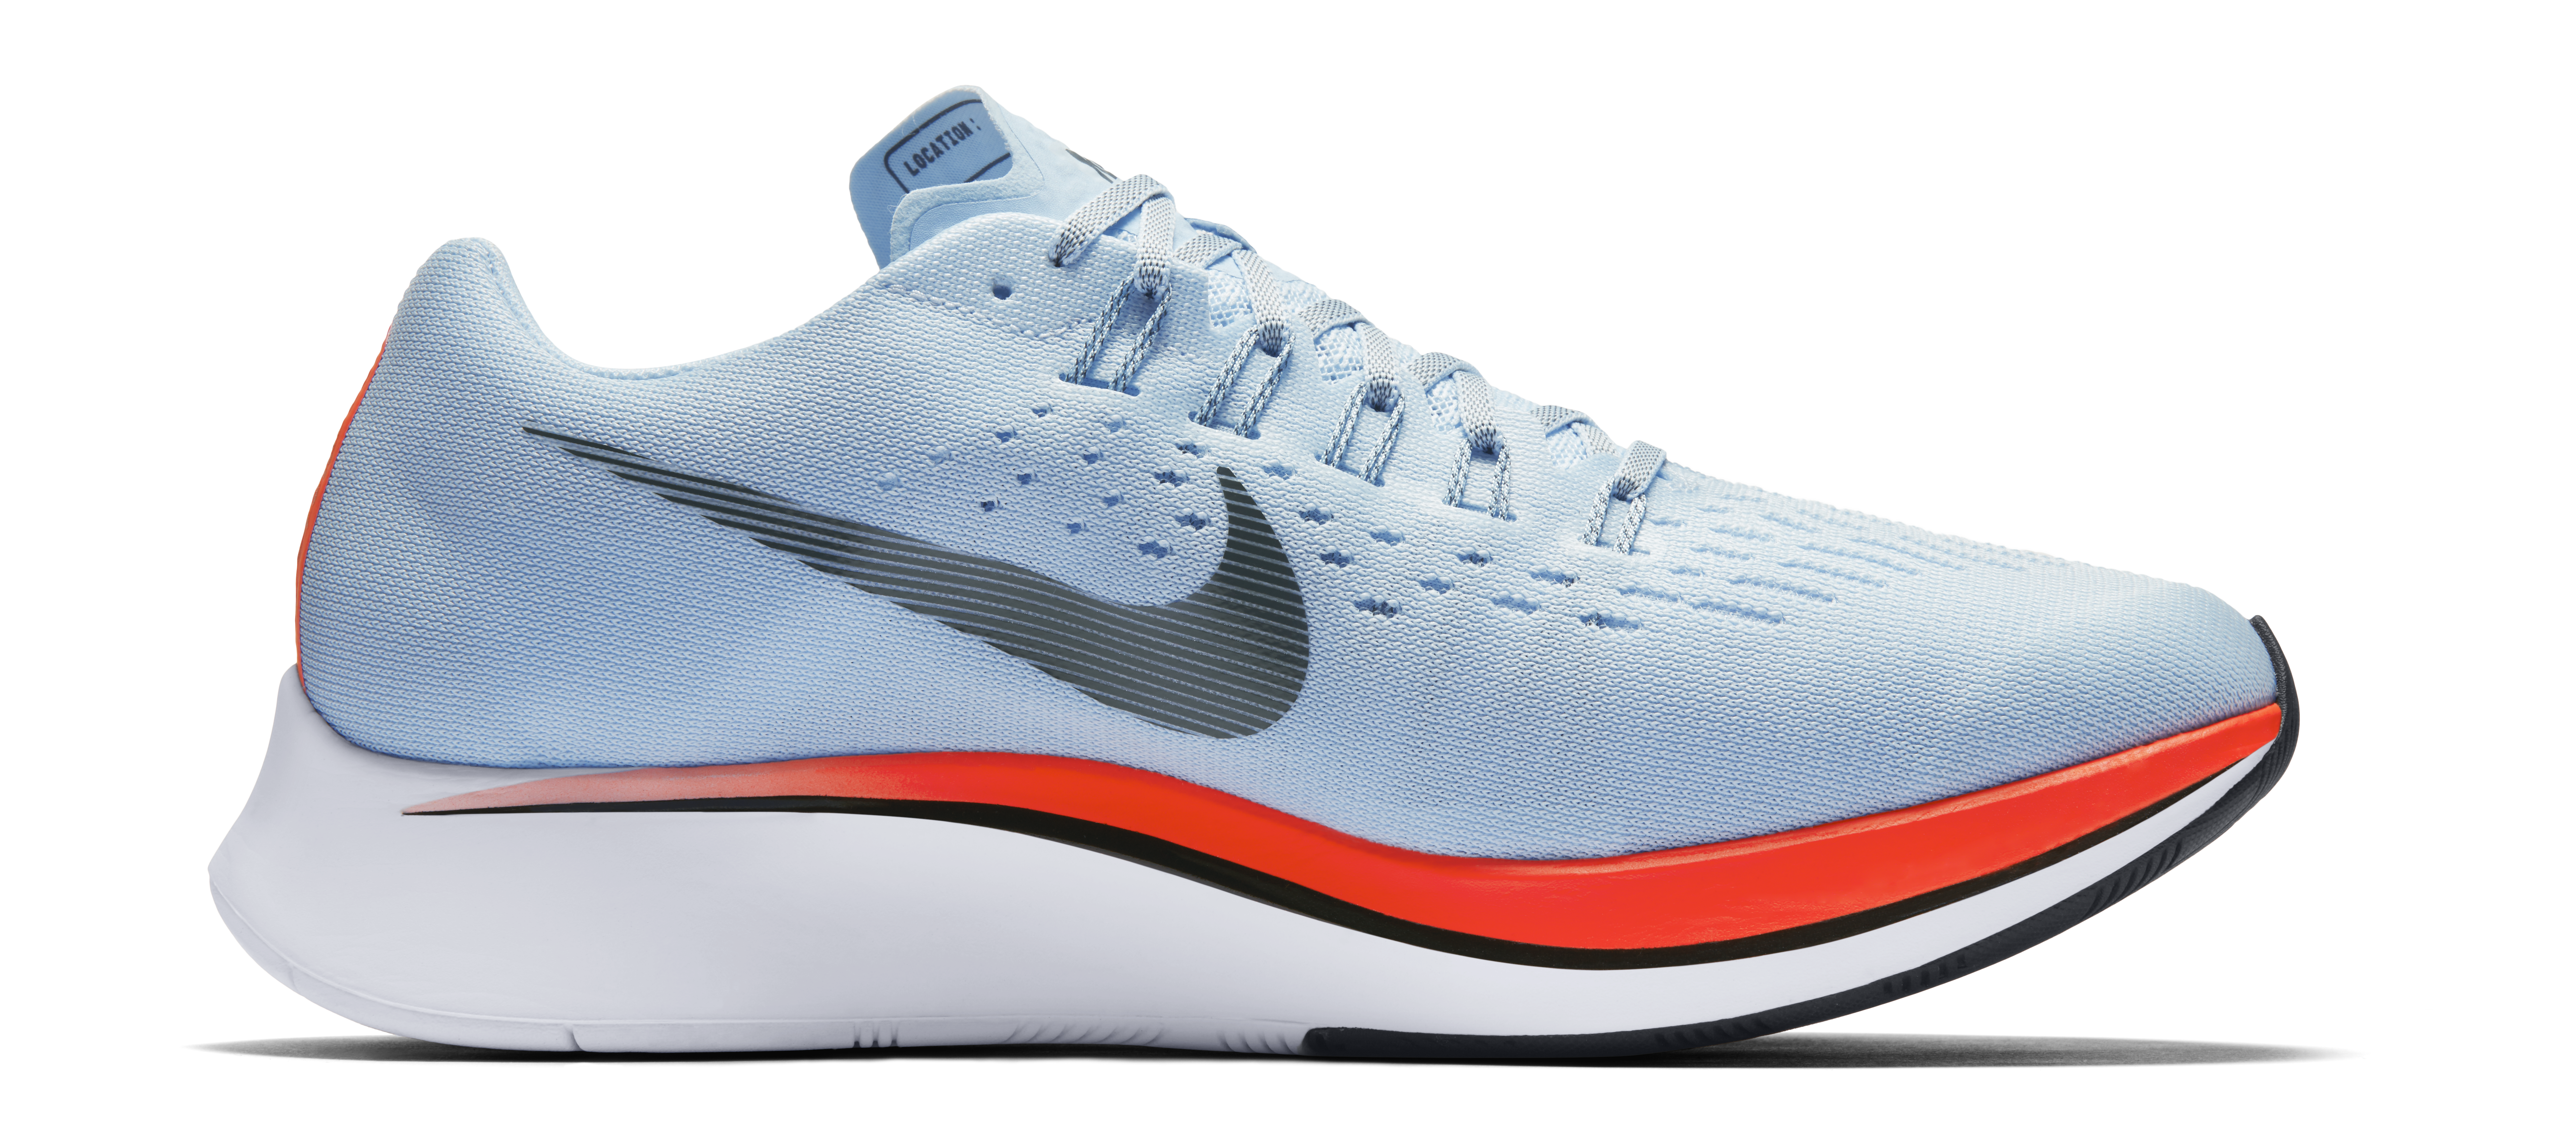 Cropped nike shoe png. Unveils what it hopes